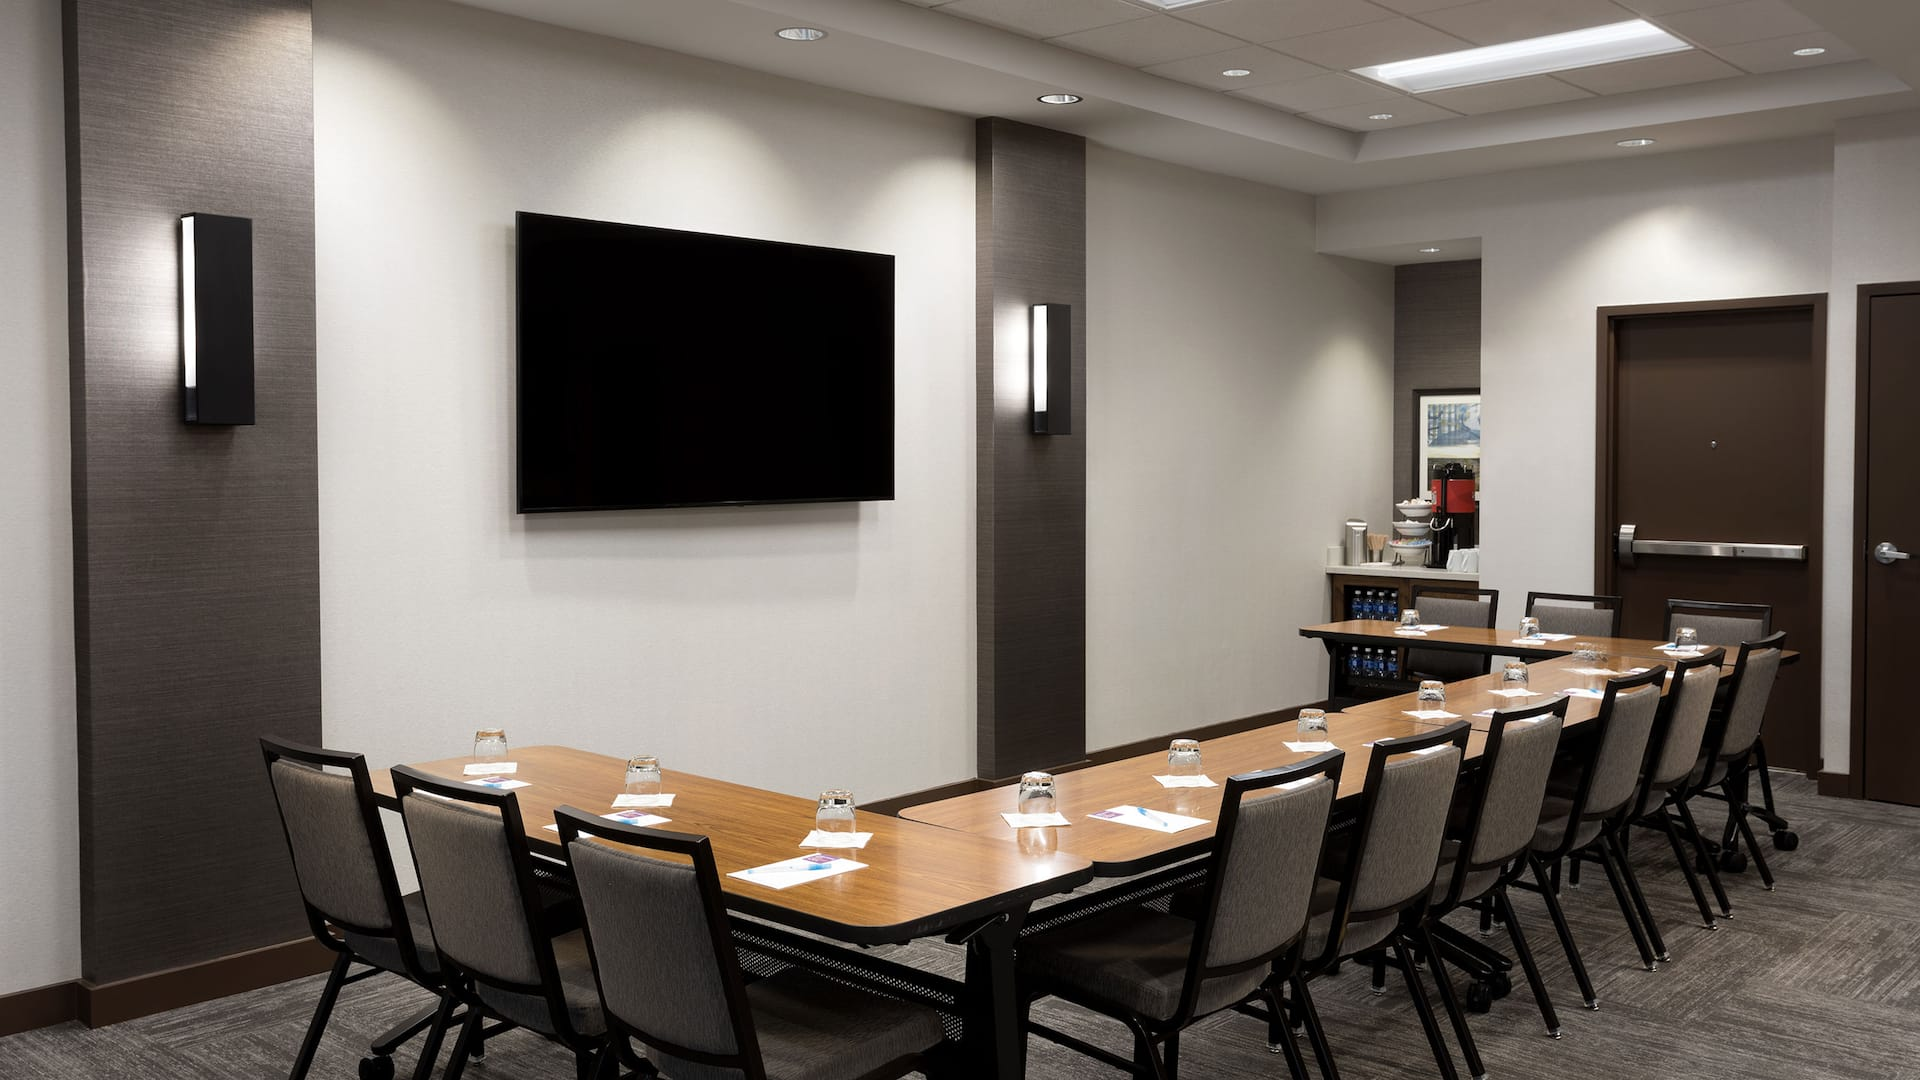 Classroom-style meeting space